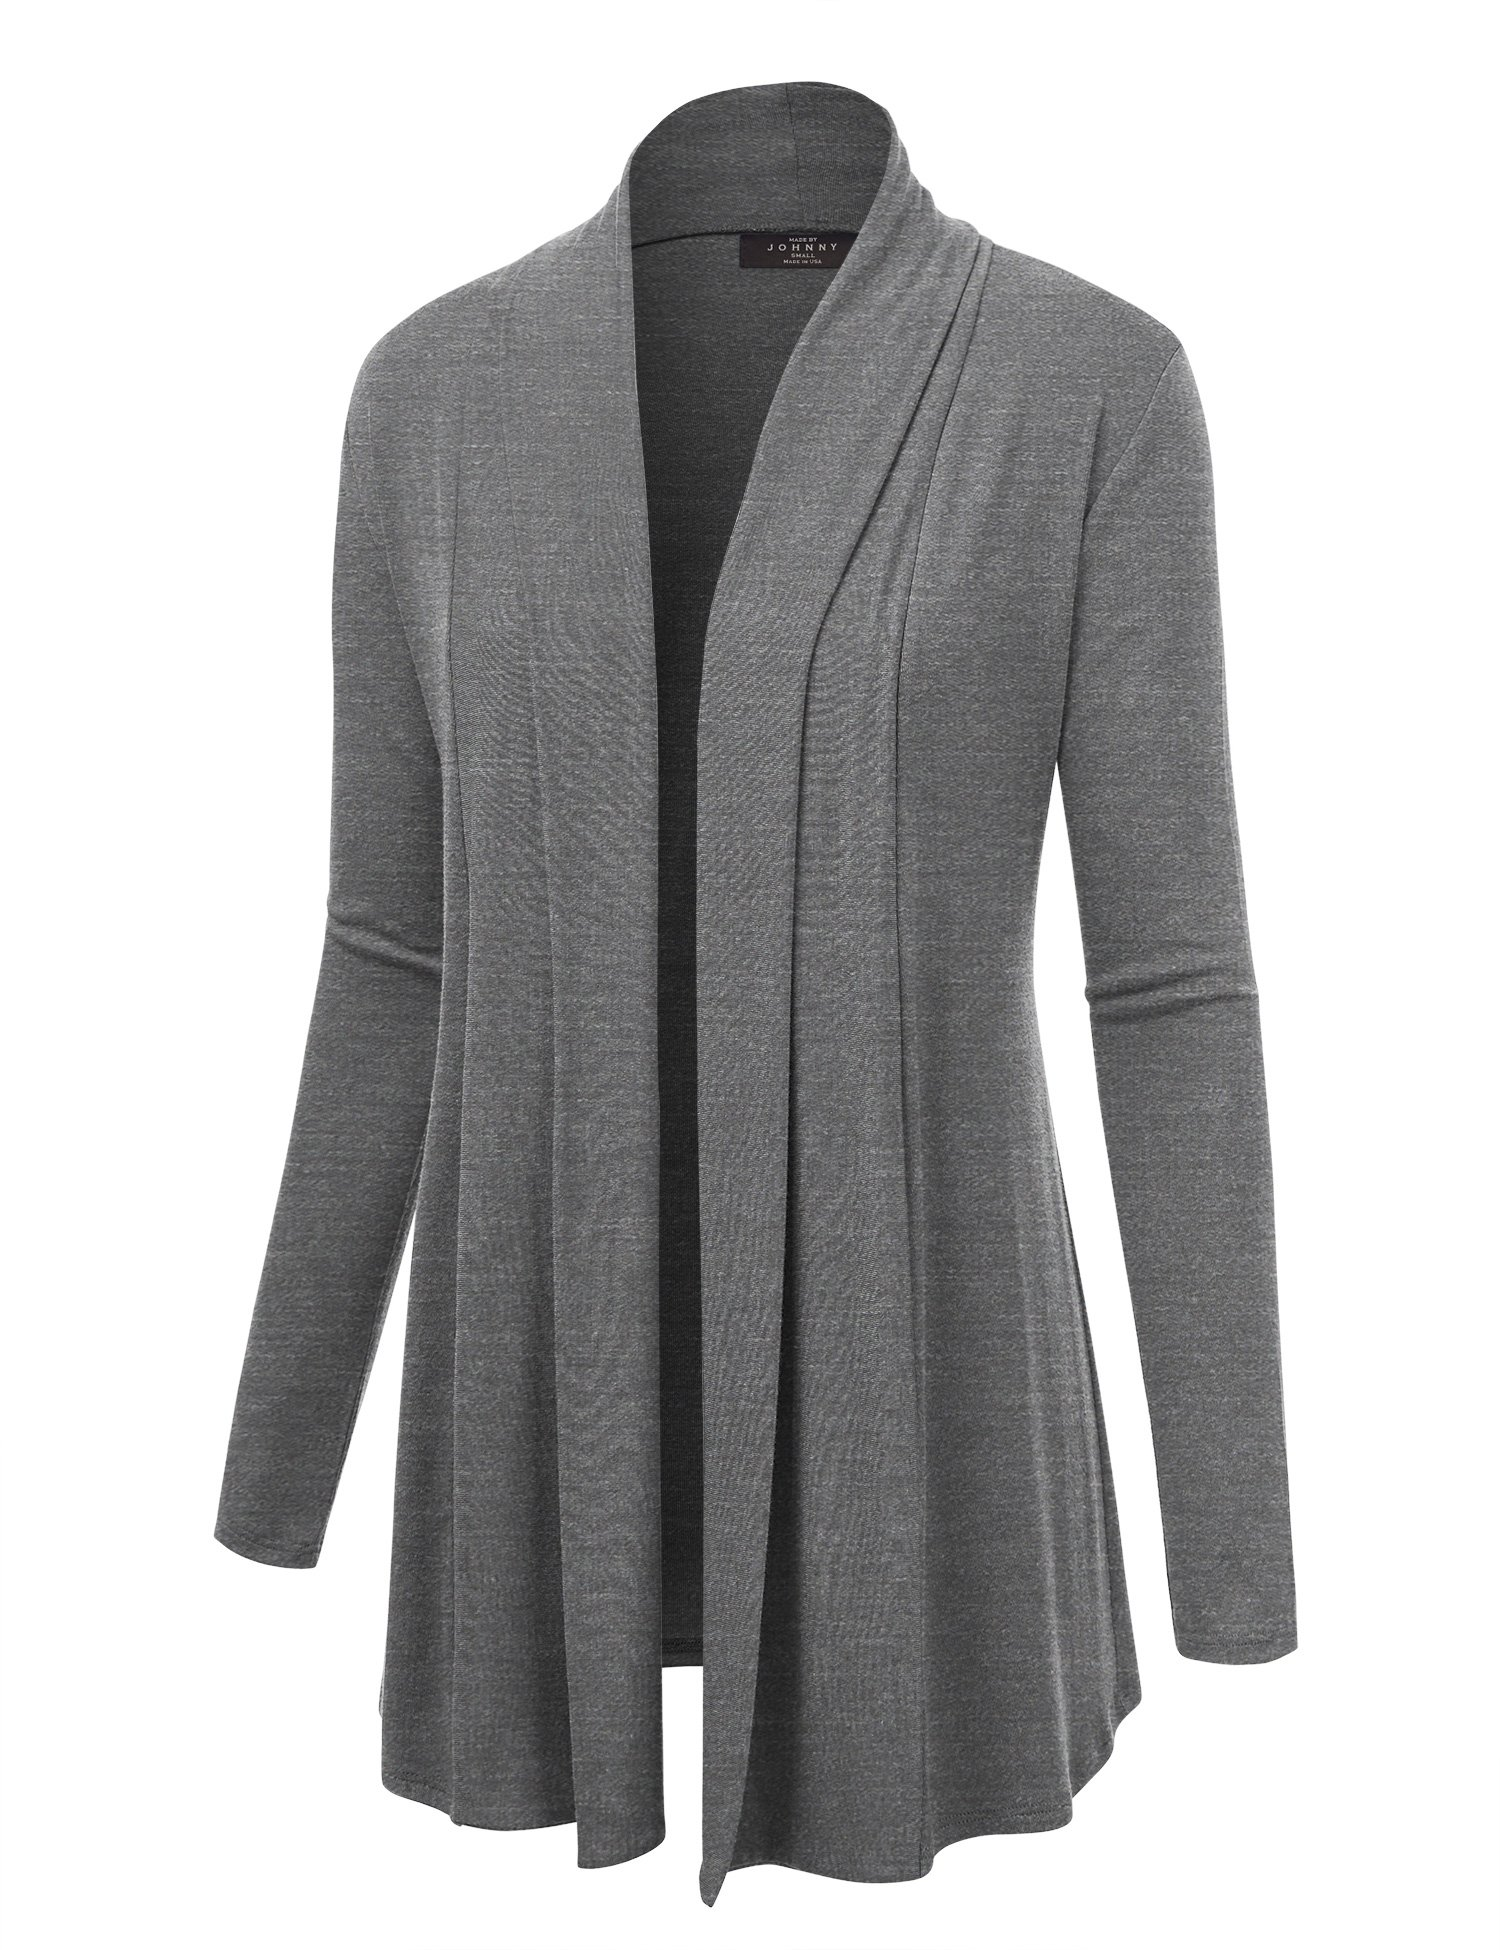 Lock and Love WSK1301 Womens Open Draped Knit Shawl Cardigan M Heather_Dark_Grey by Lock and Love (Image #1)